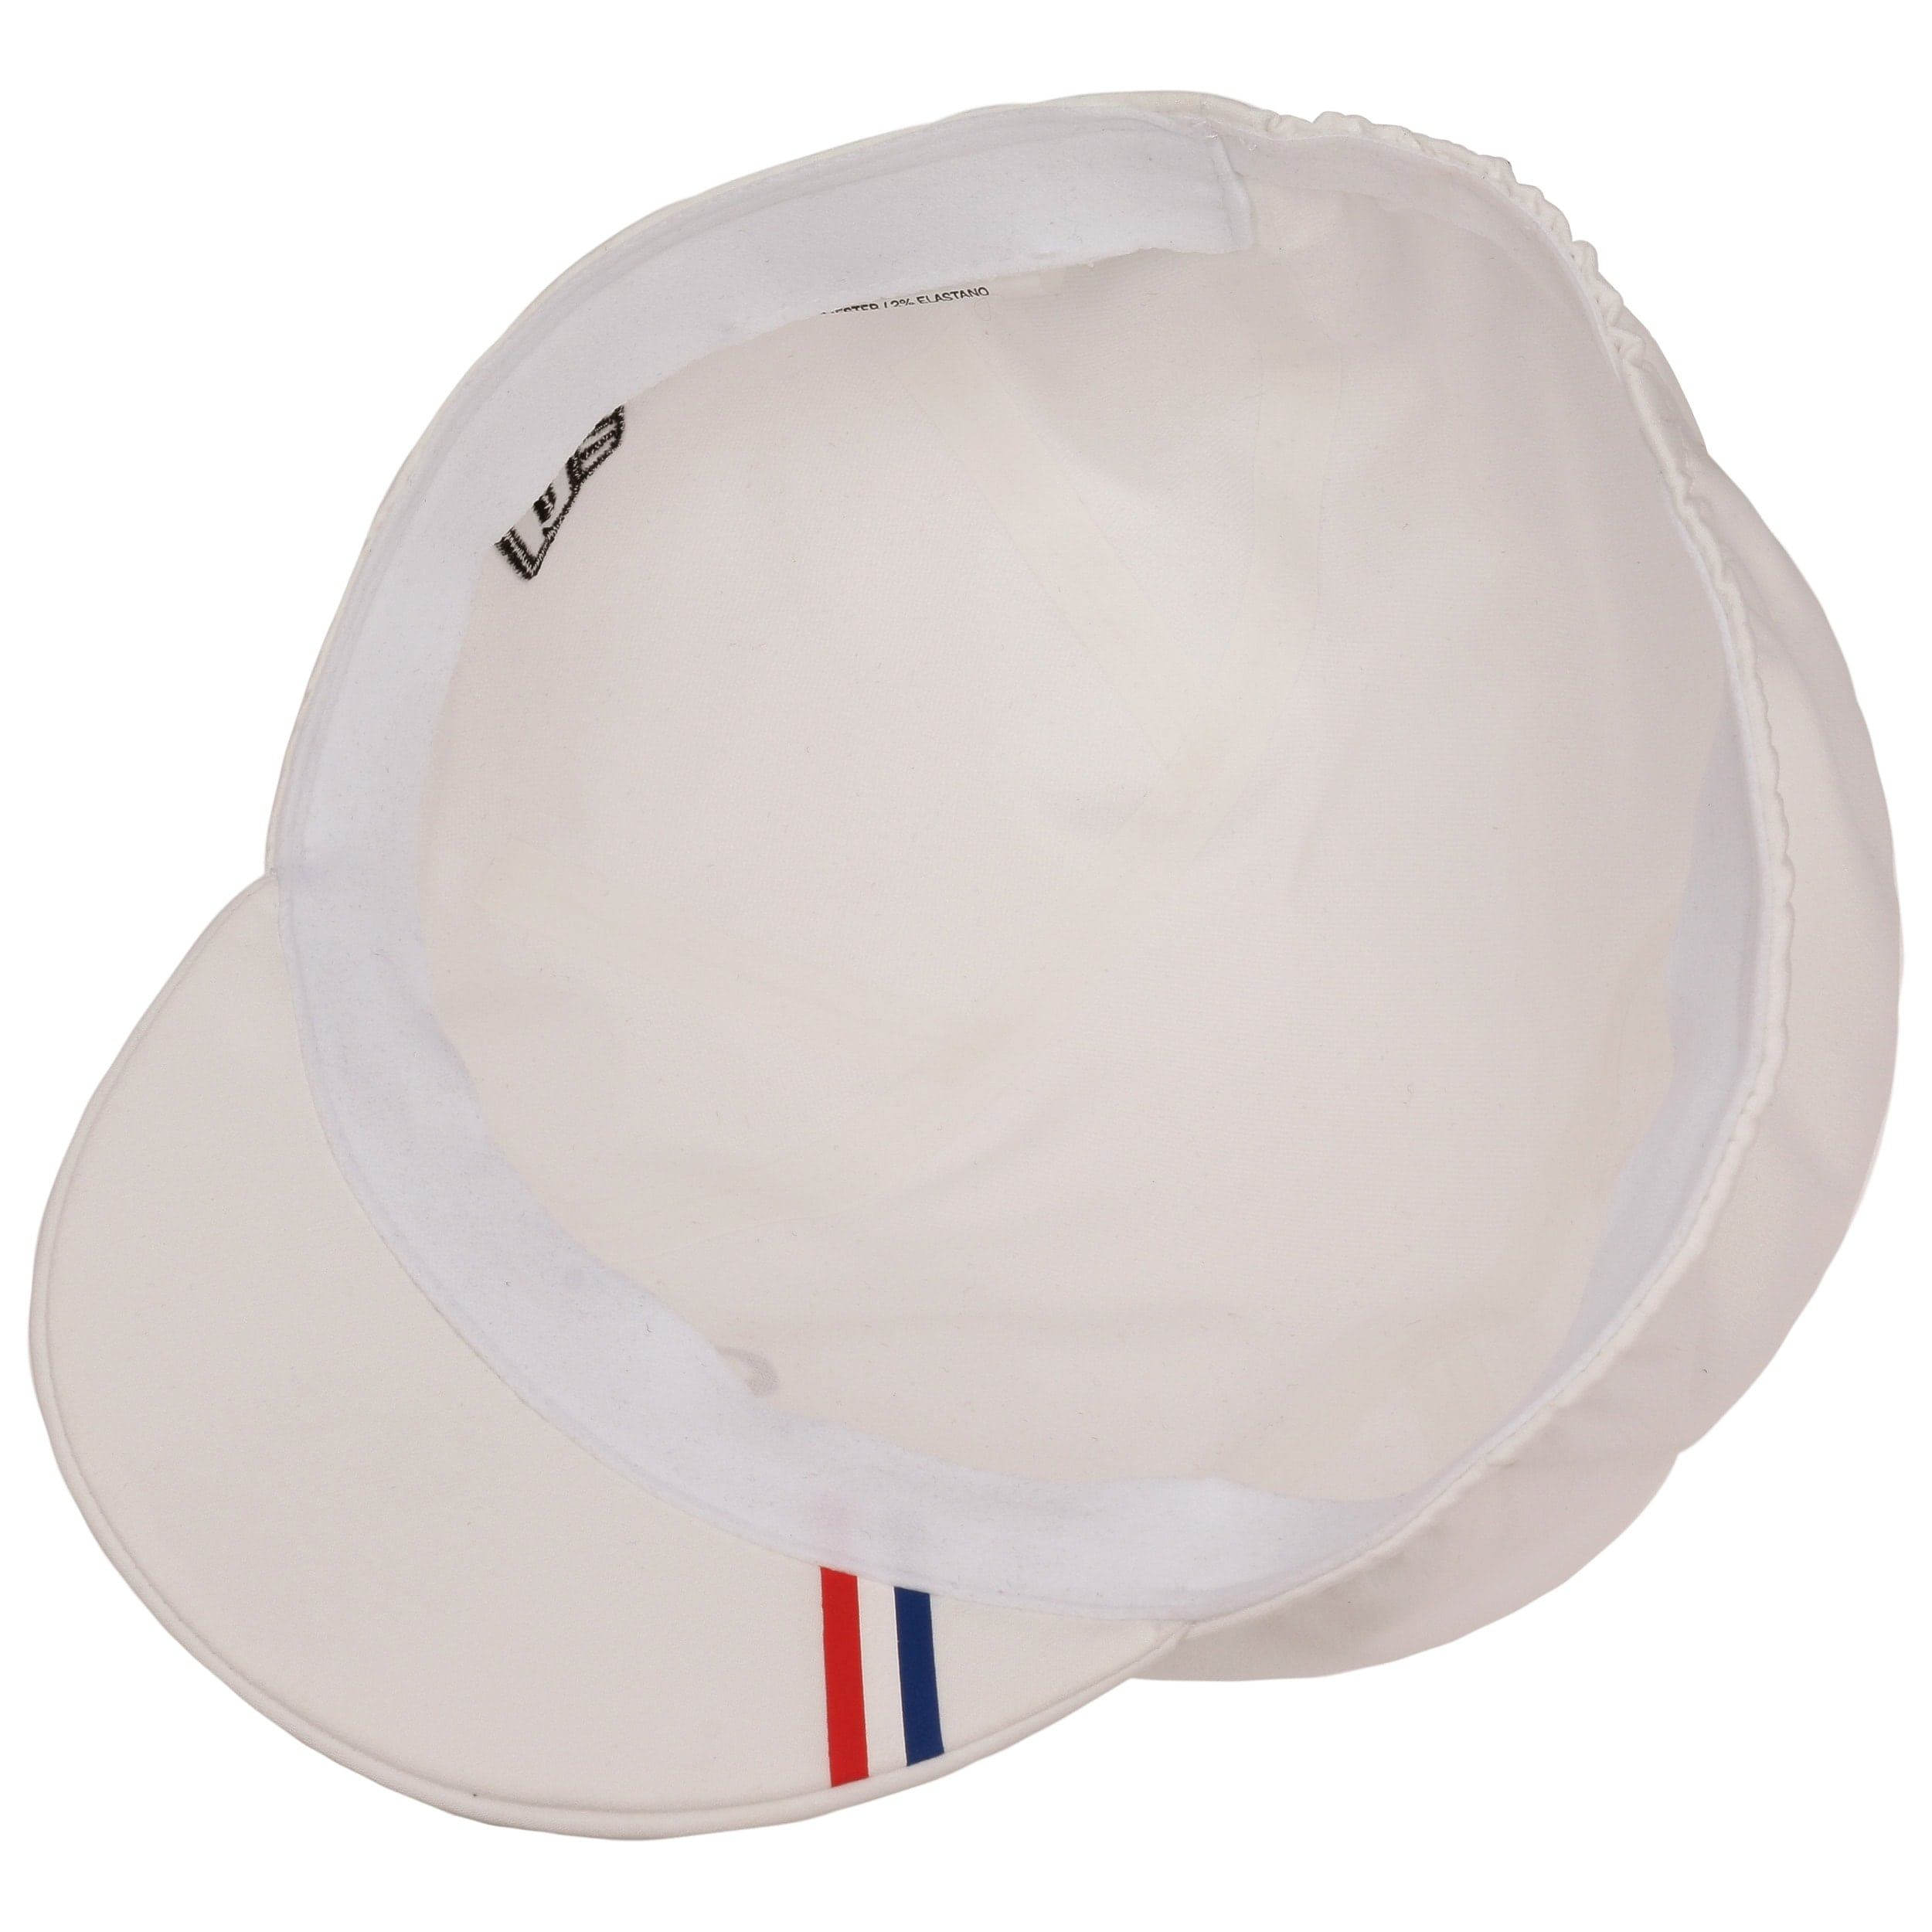 ... Tour De France Cycling Cap by New Era - white 2 ... 8f4ff2836bf